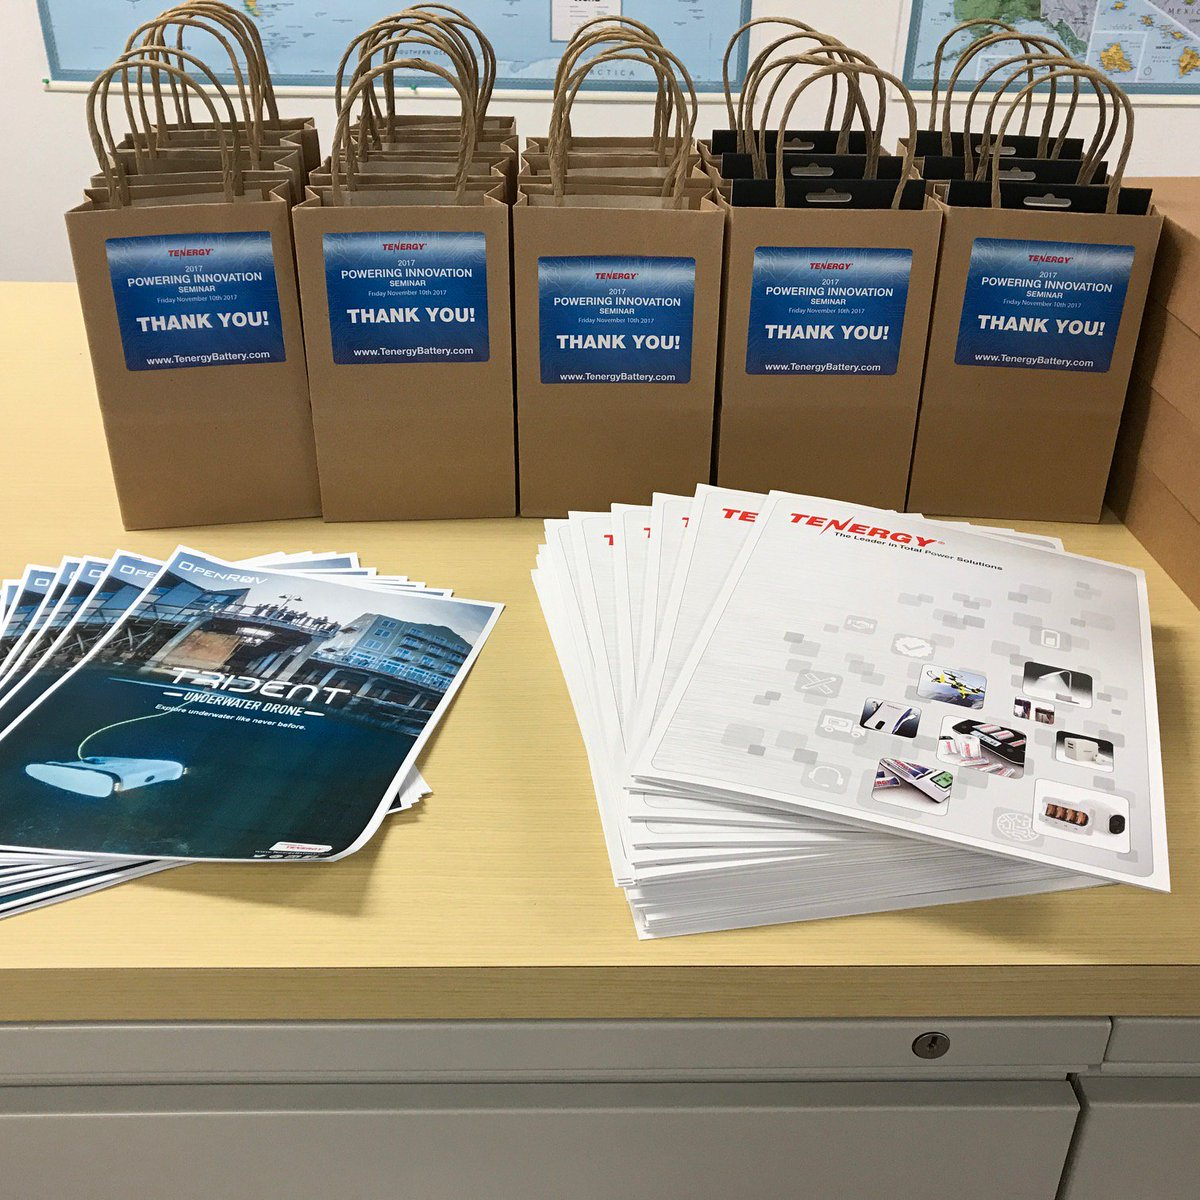 The gifts are ready for our lucky #Seminar attendees #Powering #Innovation #Tenergy https://t.co/NWbDN29qtp